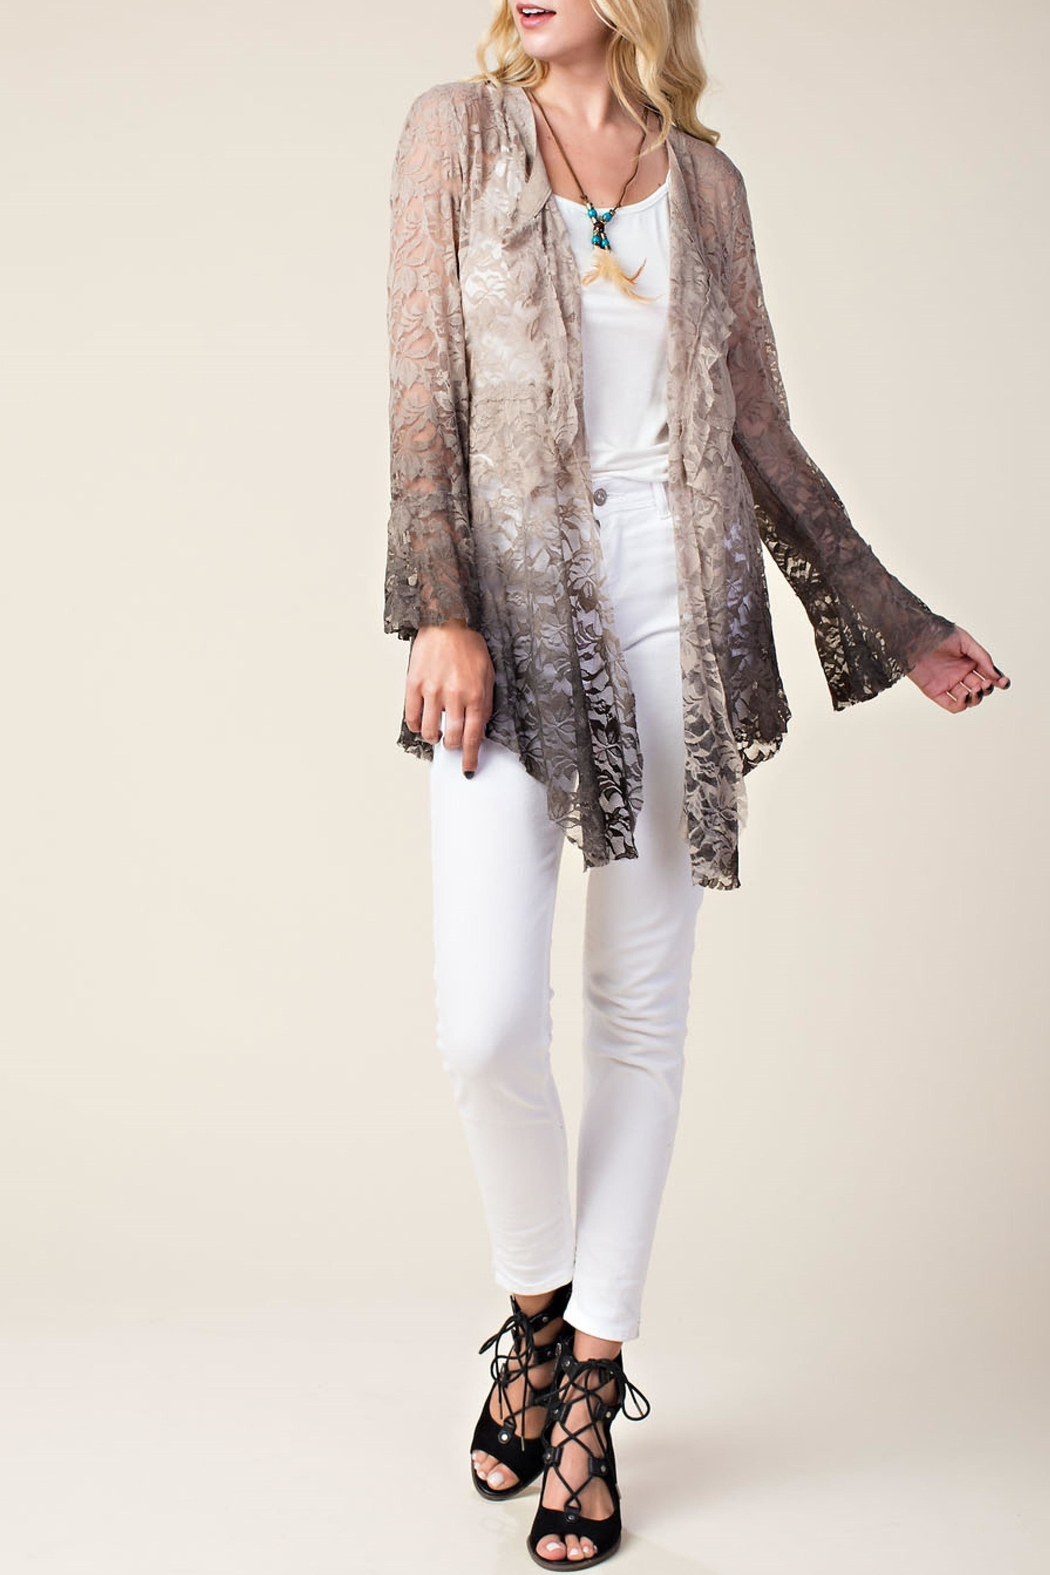 Vocal Apparel Ombre Lace Cardigan - Front Full Image